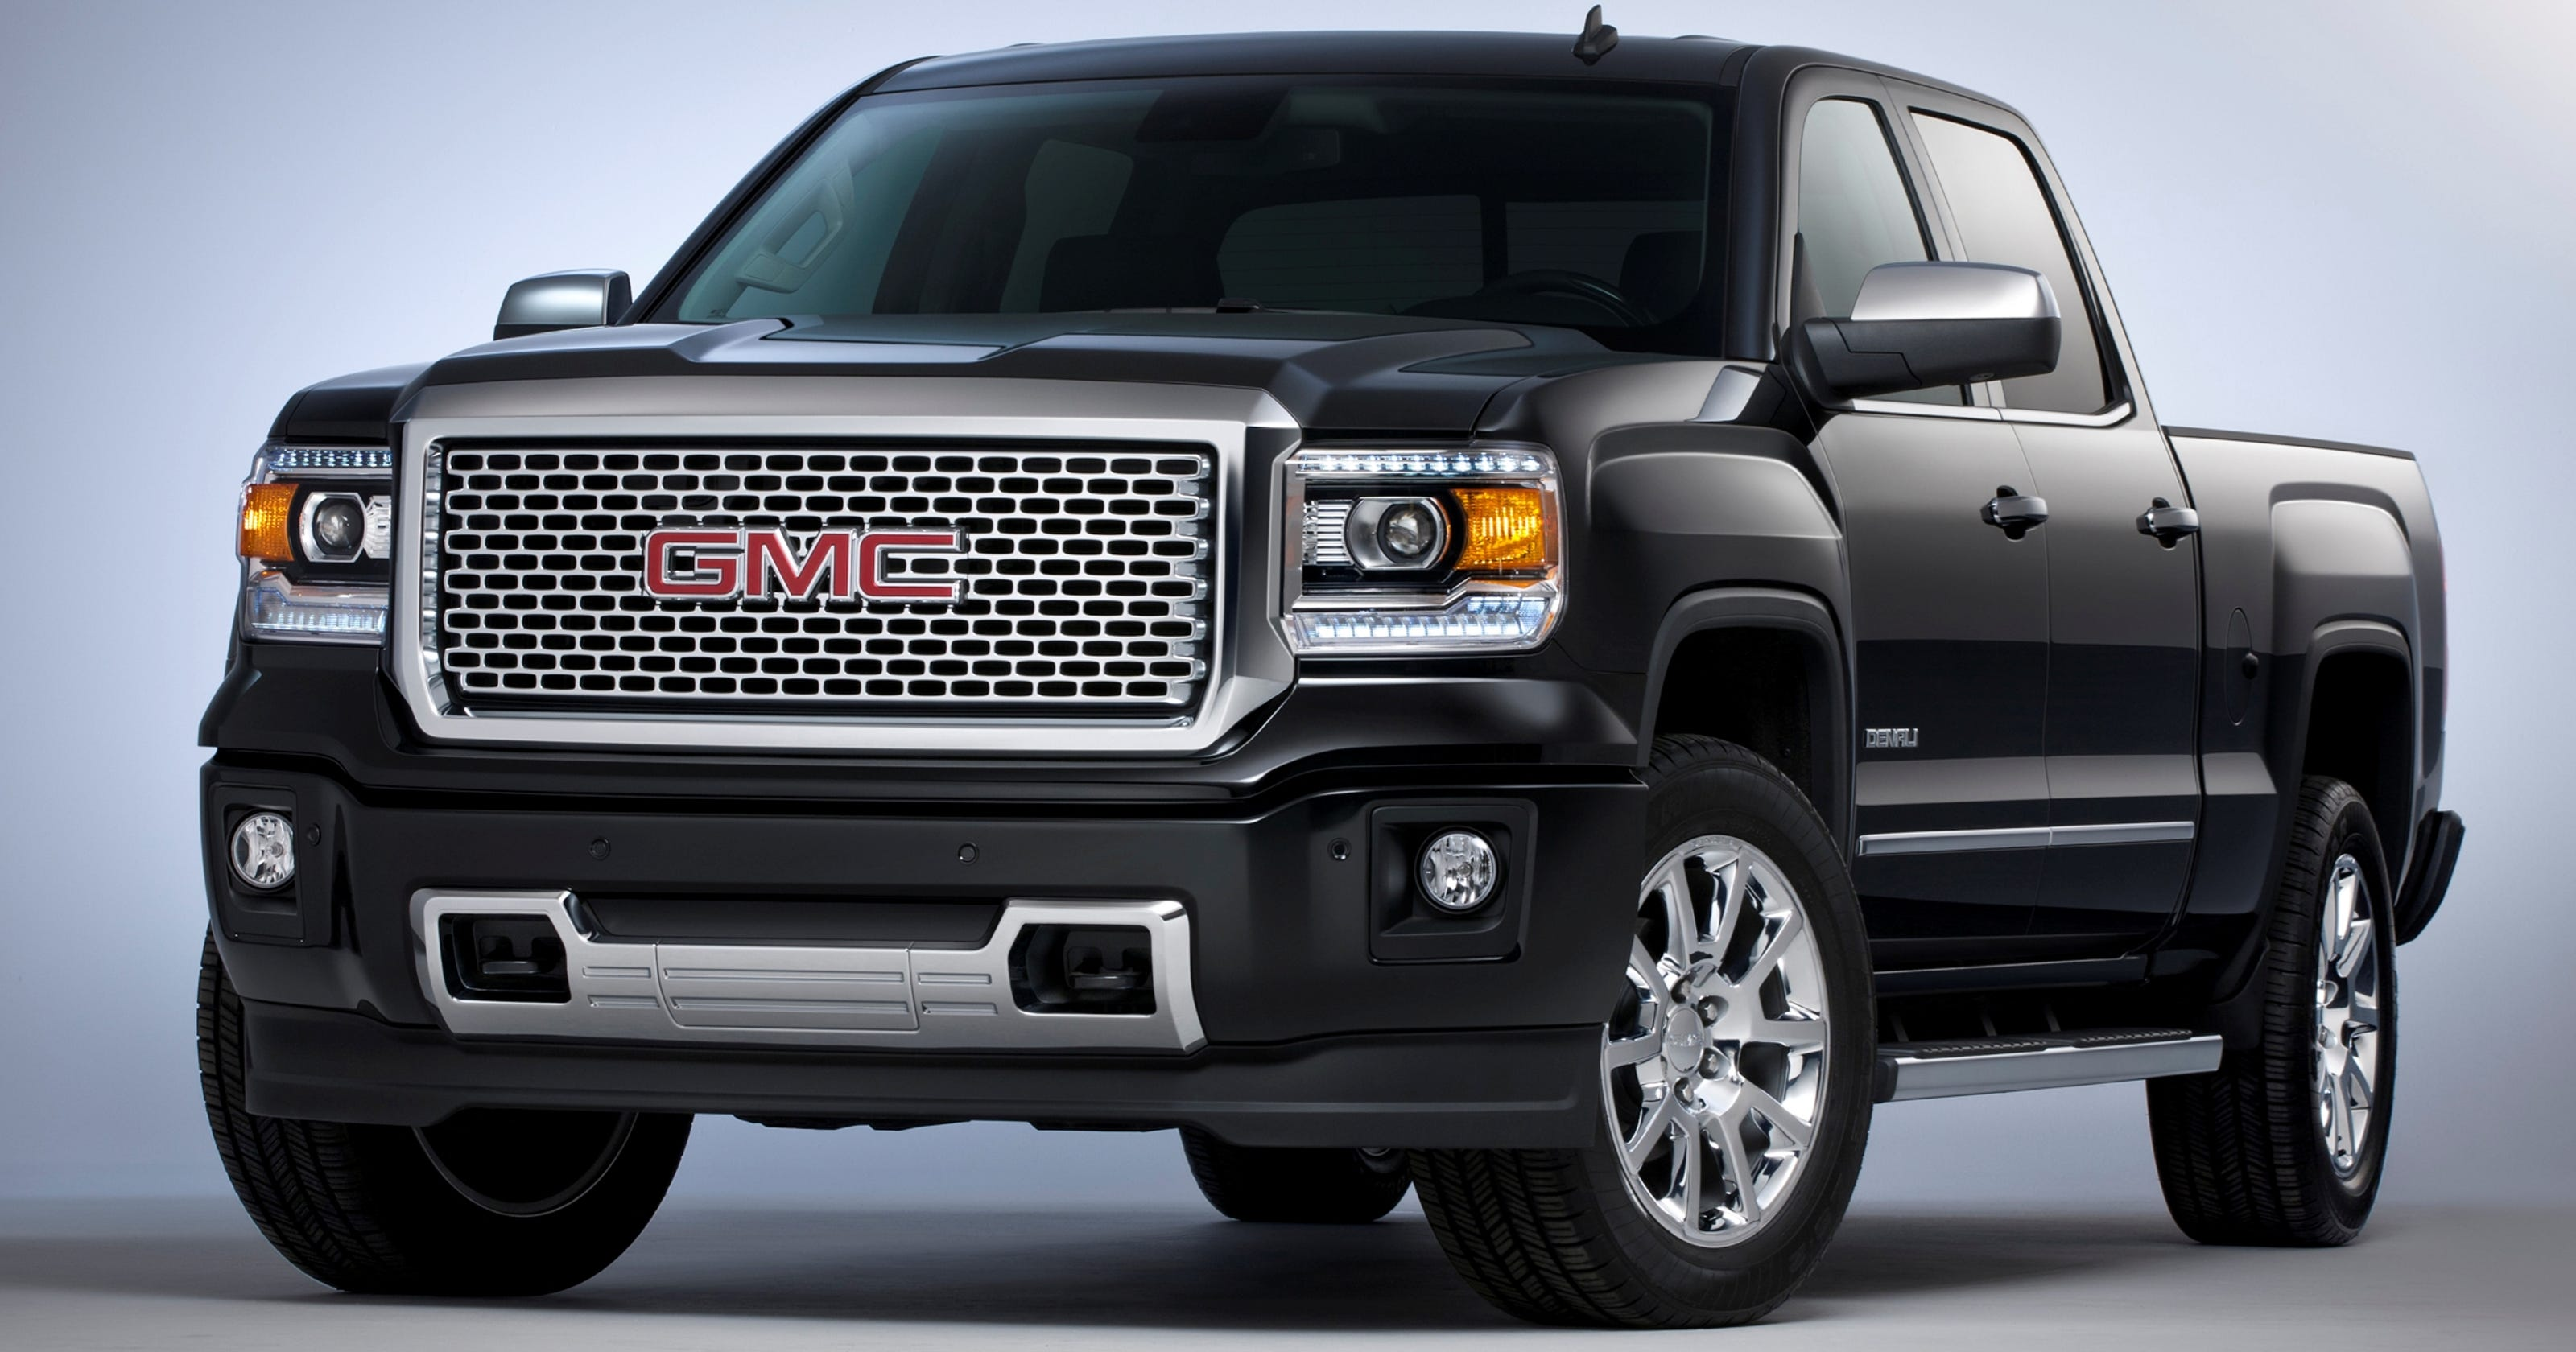 slip limited blog denali gmc march sierra published in at